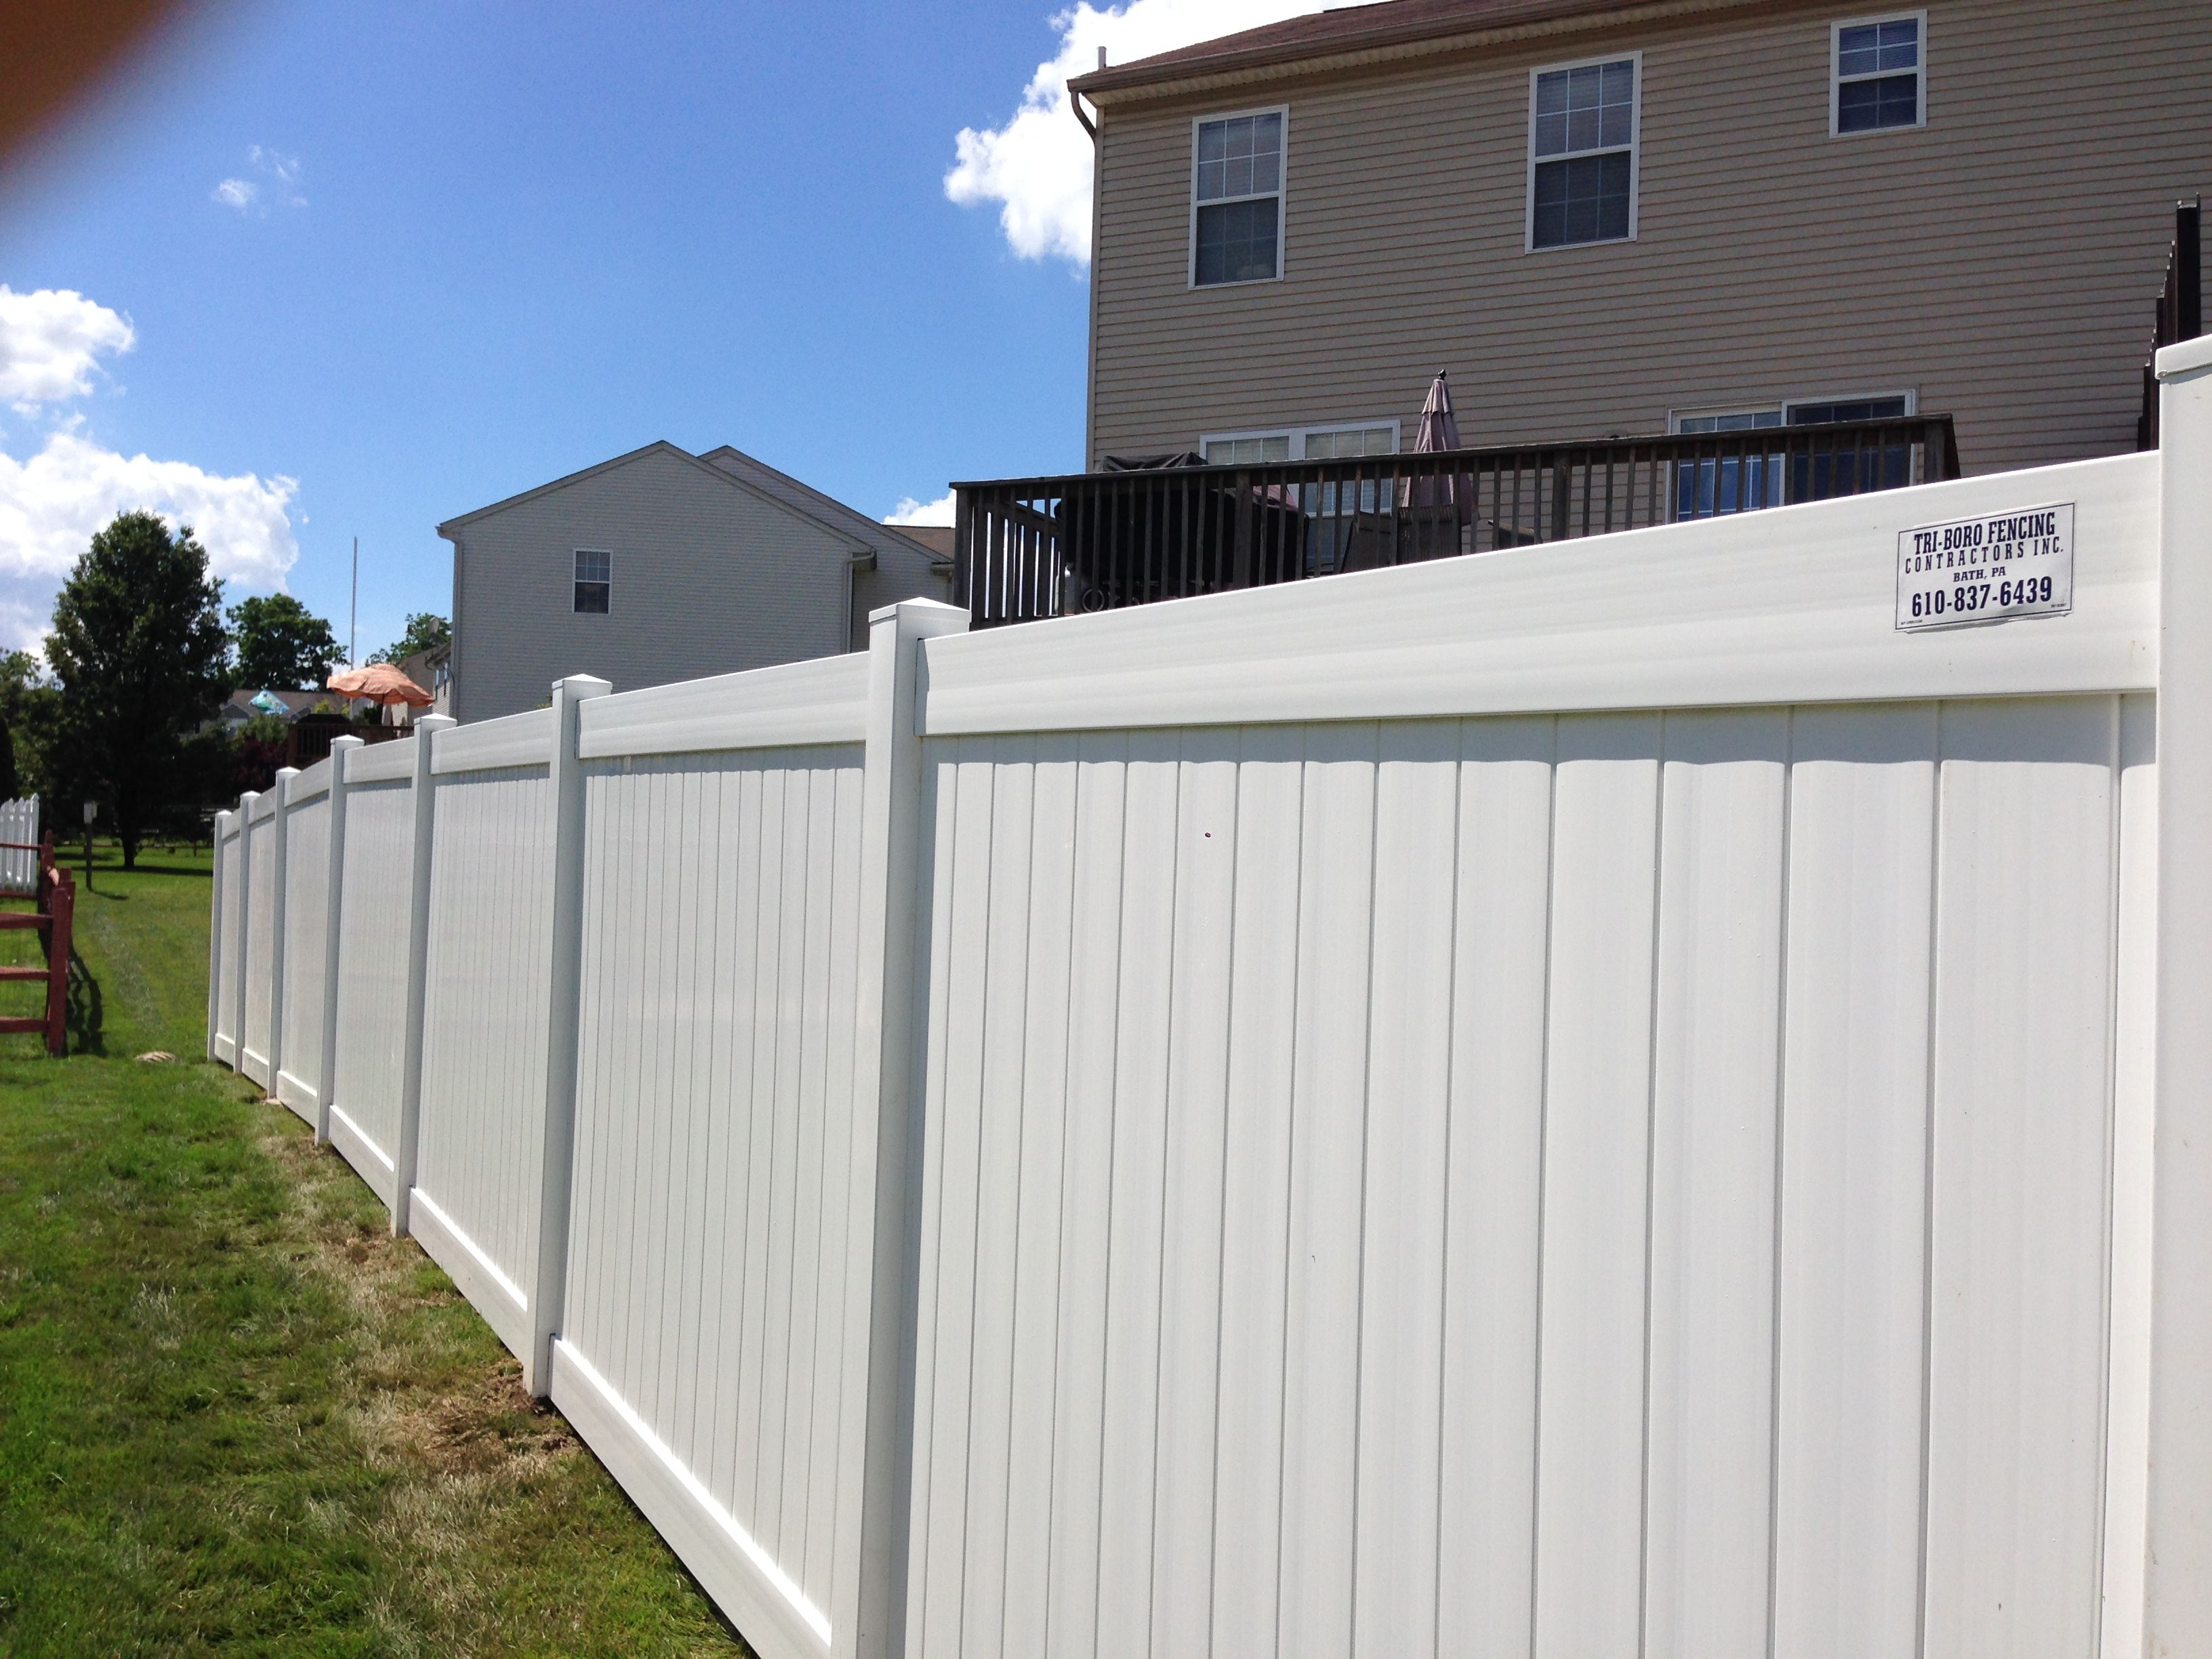 White Solid Vinyl Privacy Fence Installed By Ryan His Crew Triborofence Vinylfence Privacyfence Vinyl Privacy Fence Backyard Fences Vinyl Fence